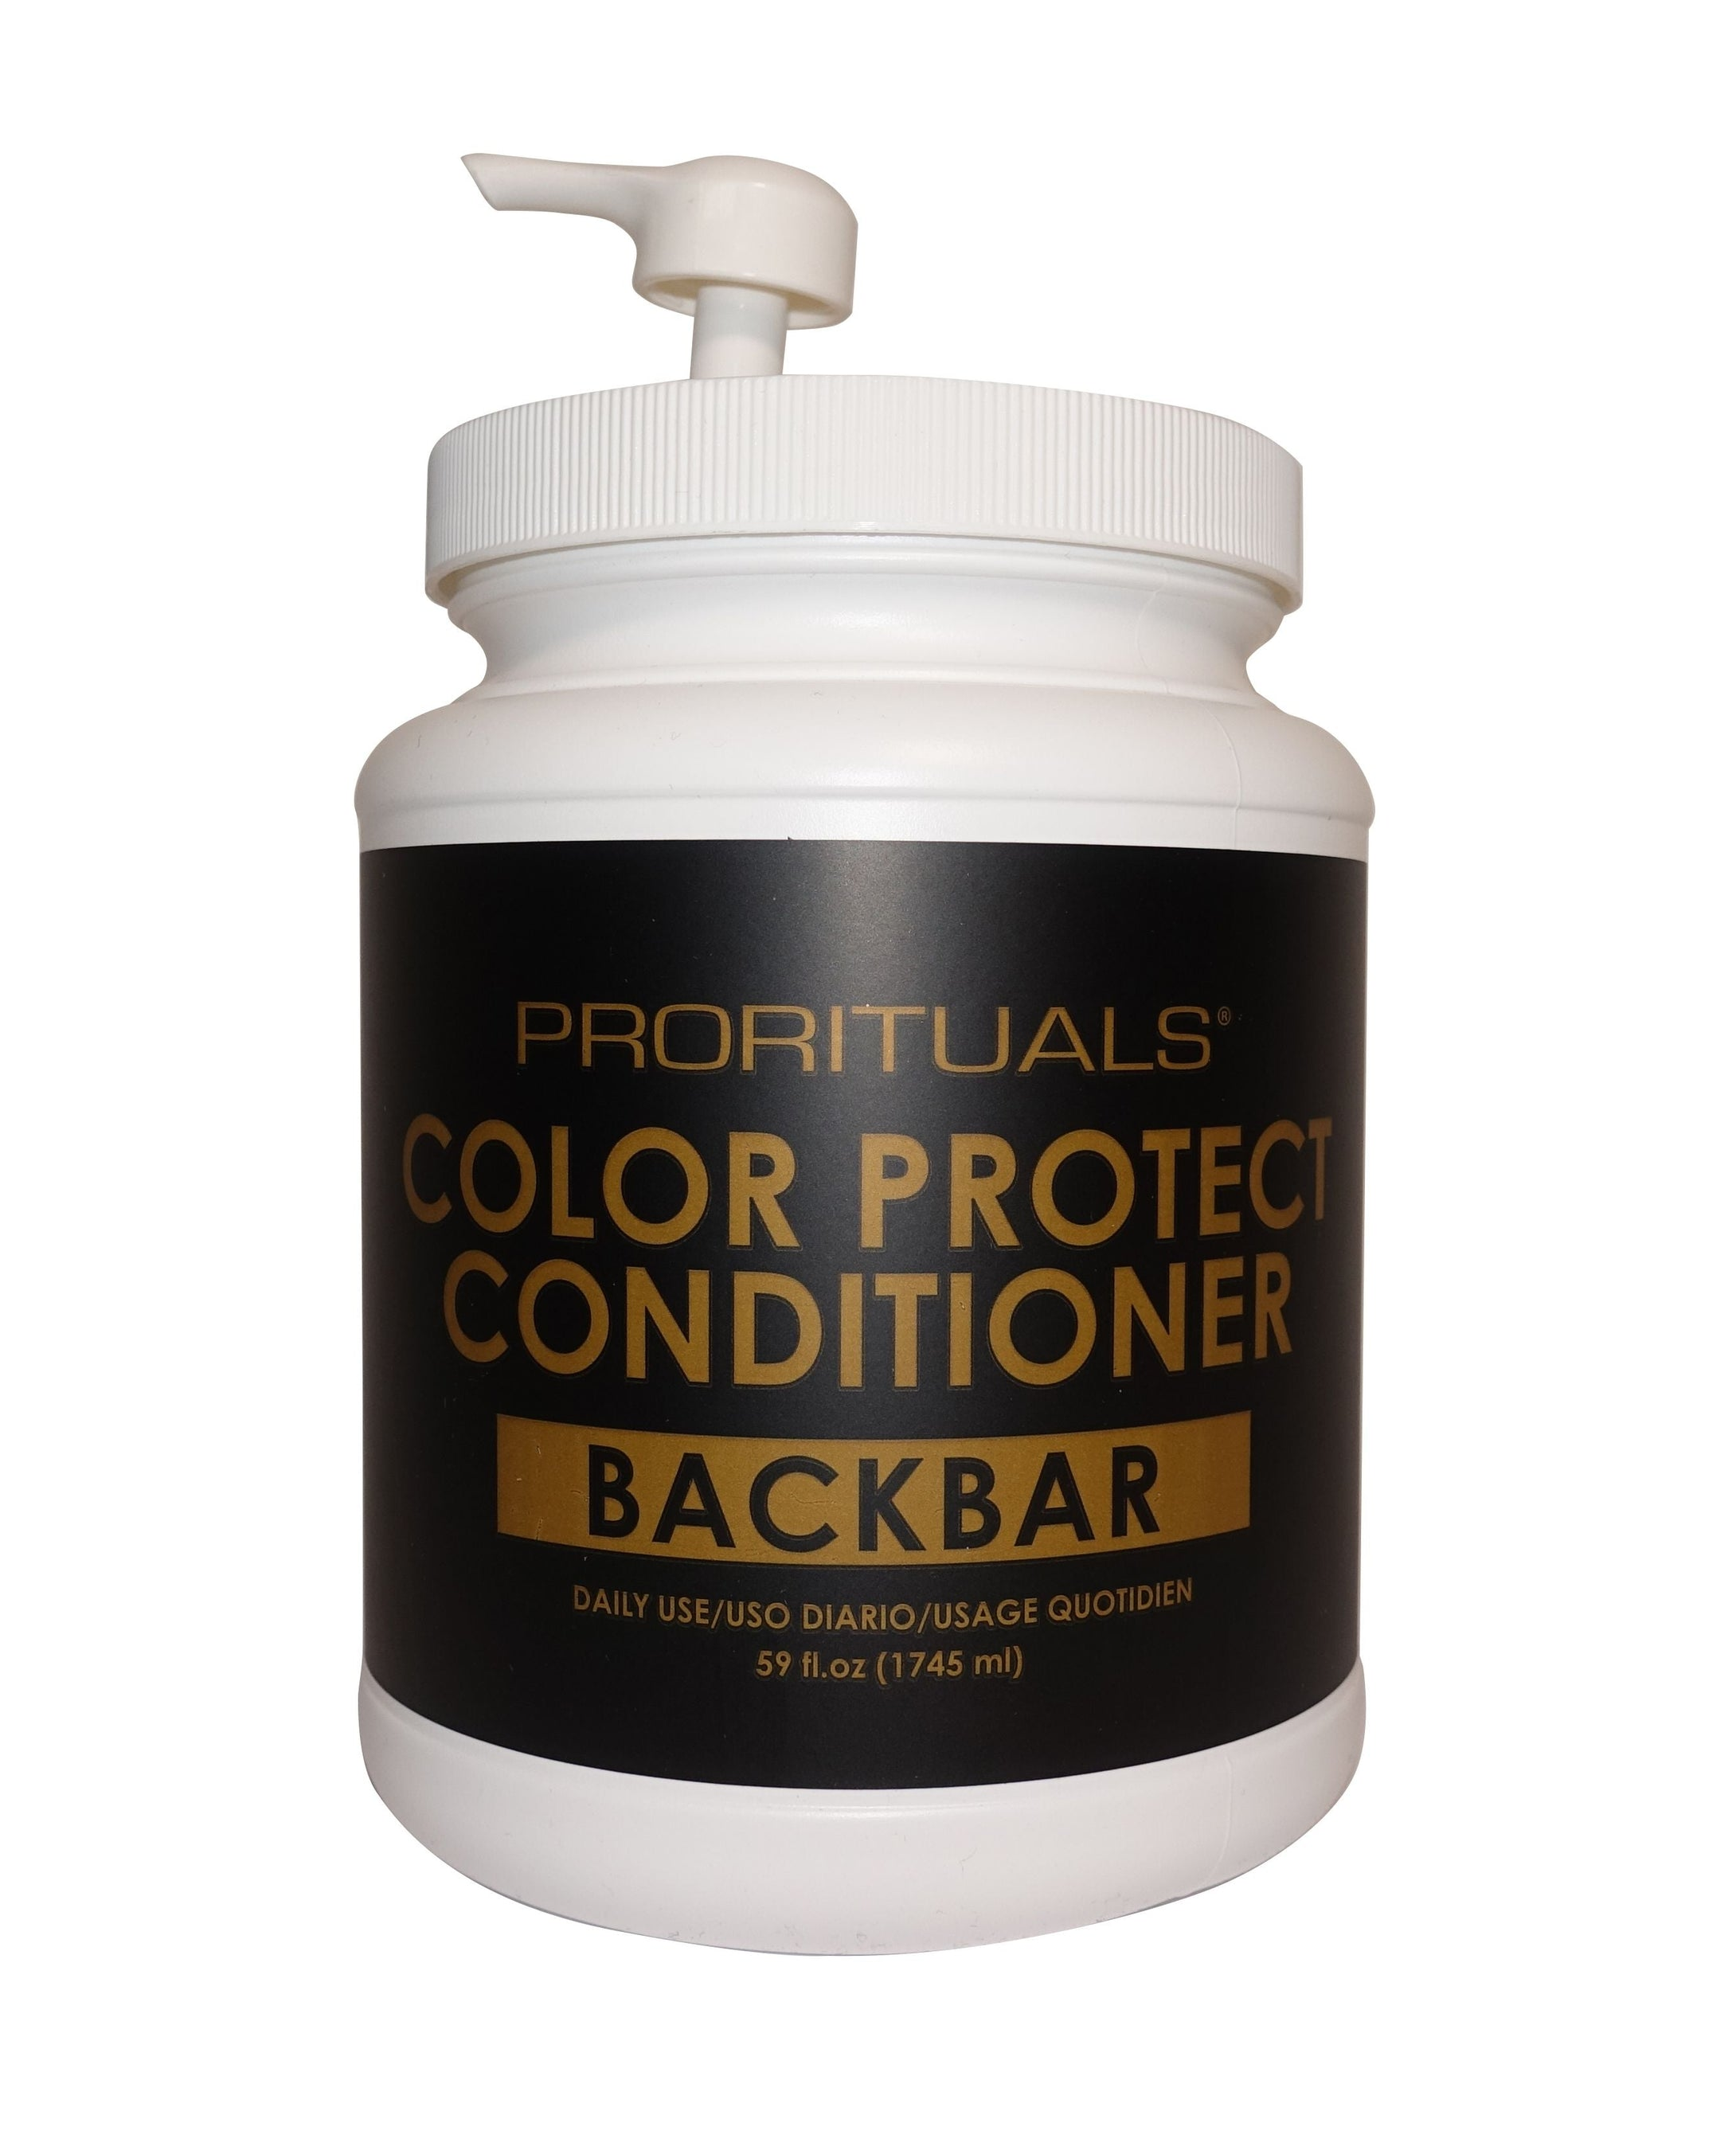 ProRituals Color Protect Conditioner (Backbar)